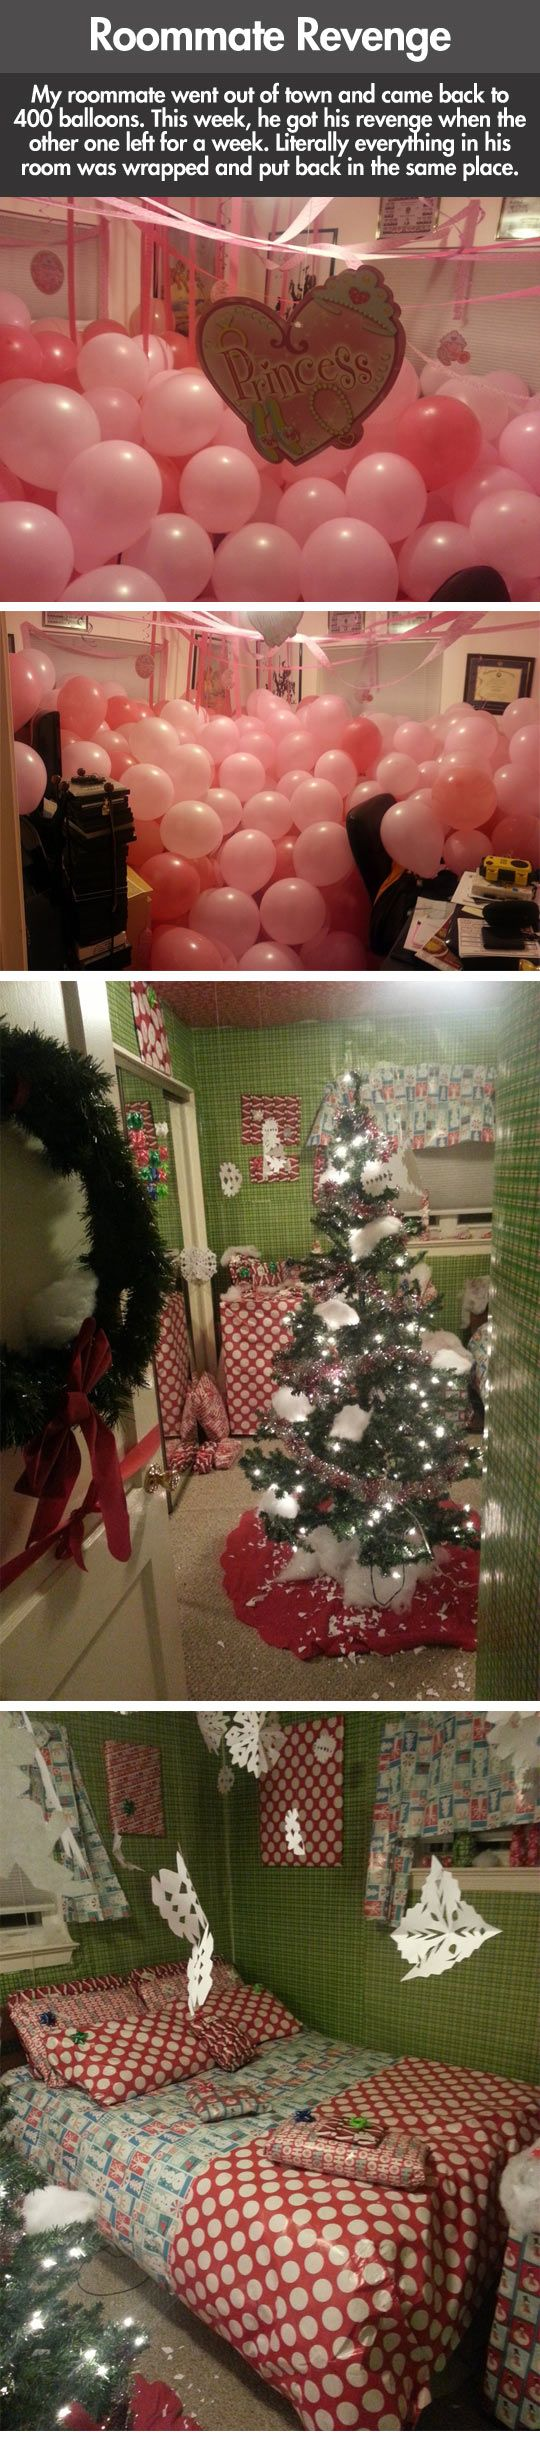 Roommate Revenge… click for more - I wouldn't even mind I'd be like CHRISTMAS